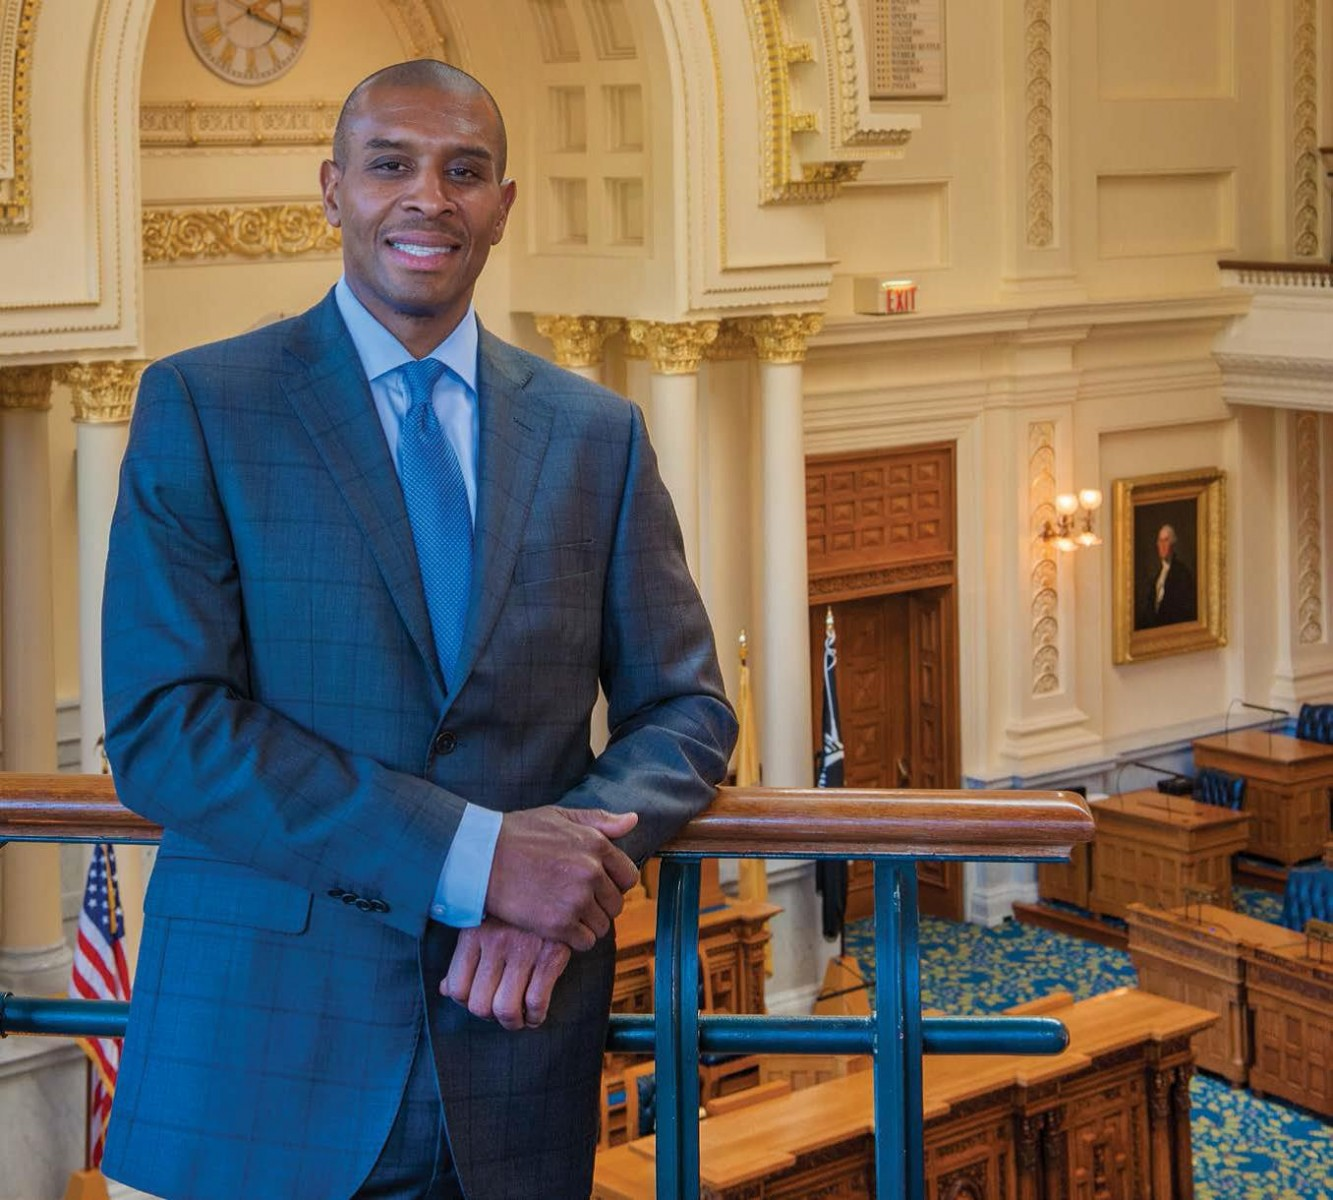 John Evans is one of MPC's Government Affairs managers. Pictured here in the New Jersey Statehouse, John works with lawmakers, regulators and others in six states in the Northeast.